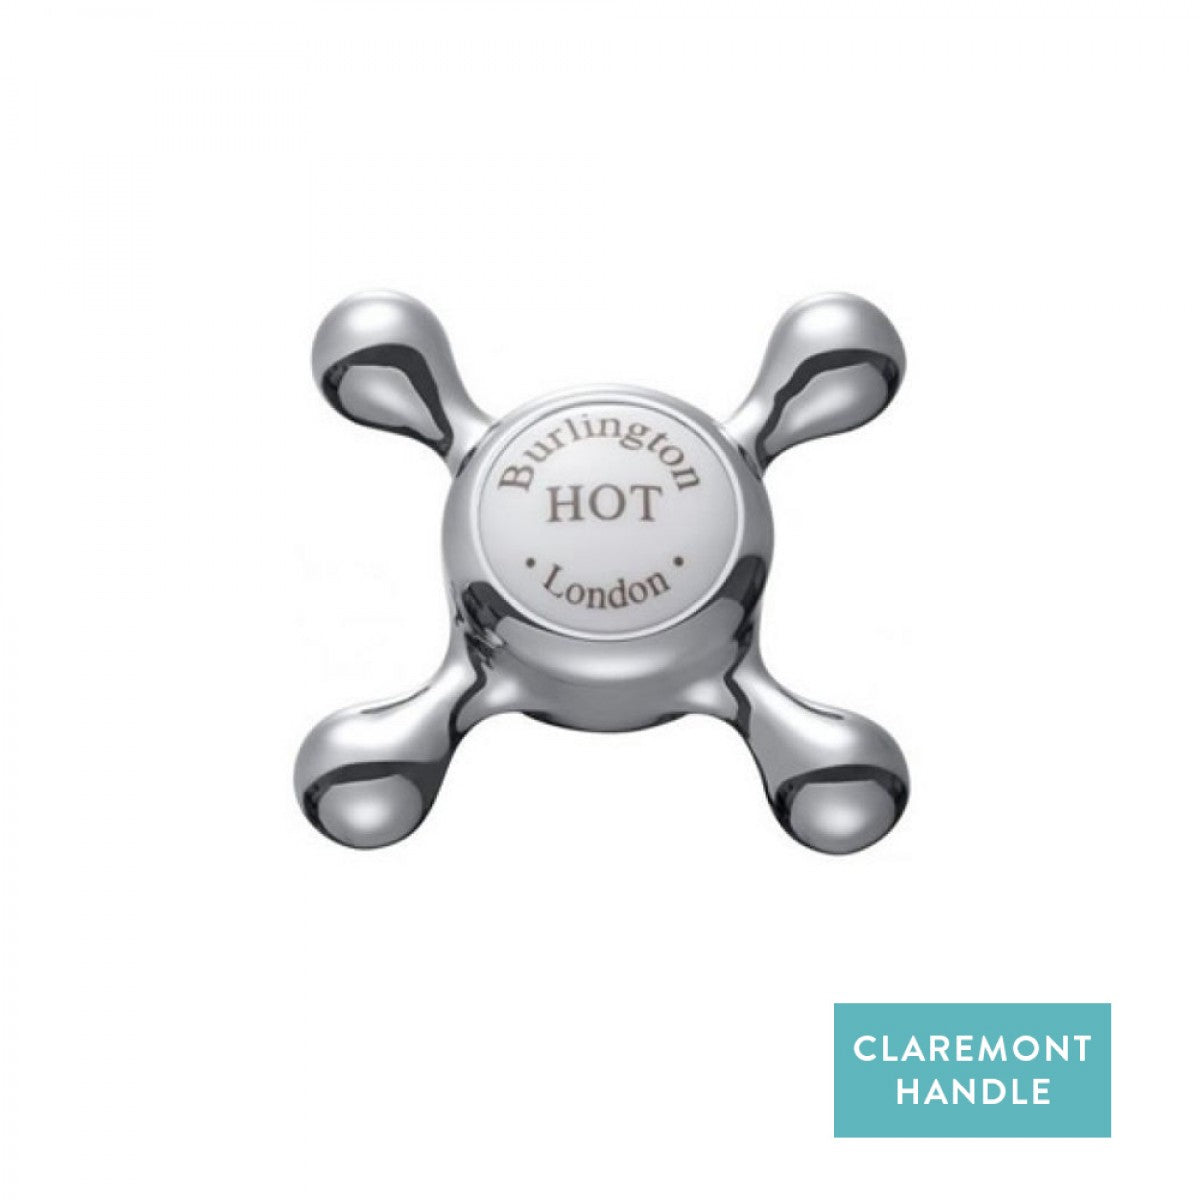 BURLINGTON AVON EXPOSED THERMOSTATIC SHOWER KIT WITH AIRBURST SHOWER HEAD